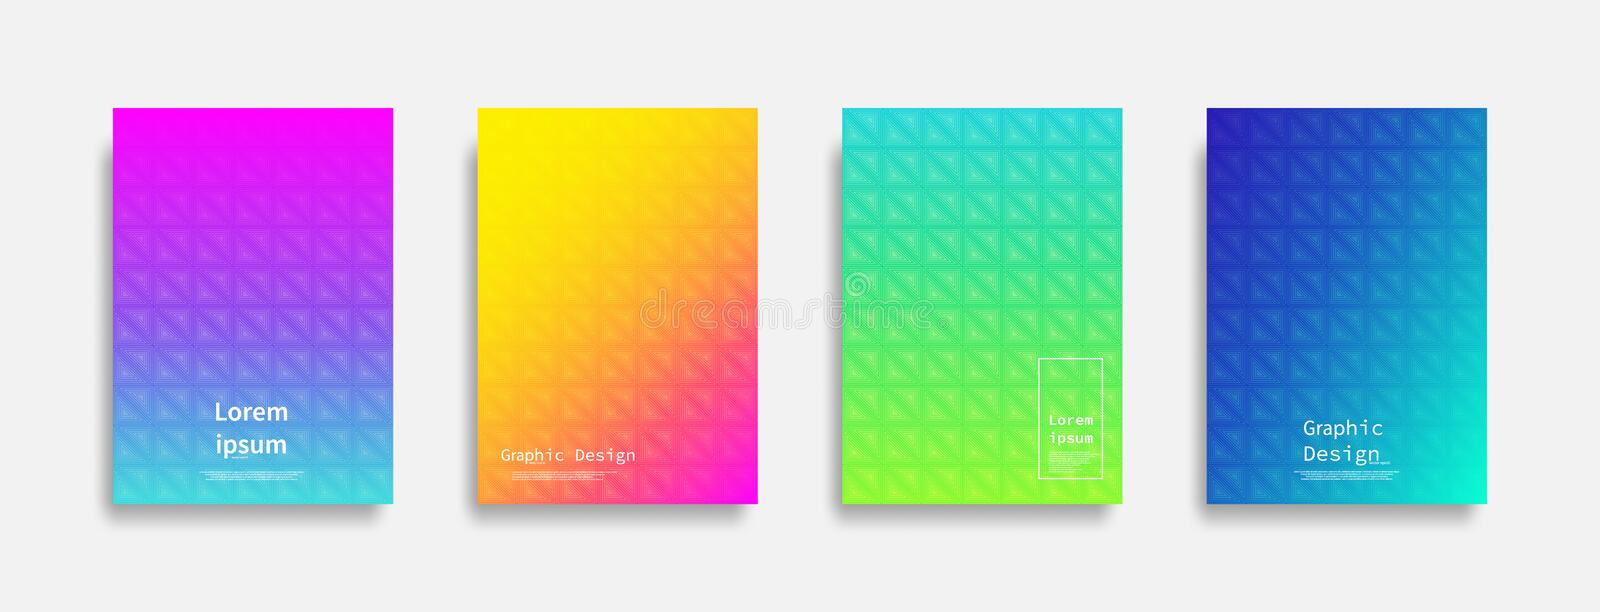 Minimal covers design. colorful triangle design. Future geometric patterns. royalty free illustration